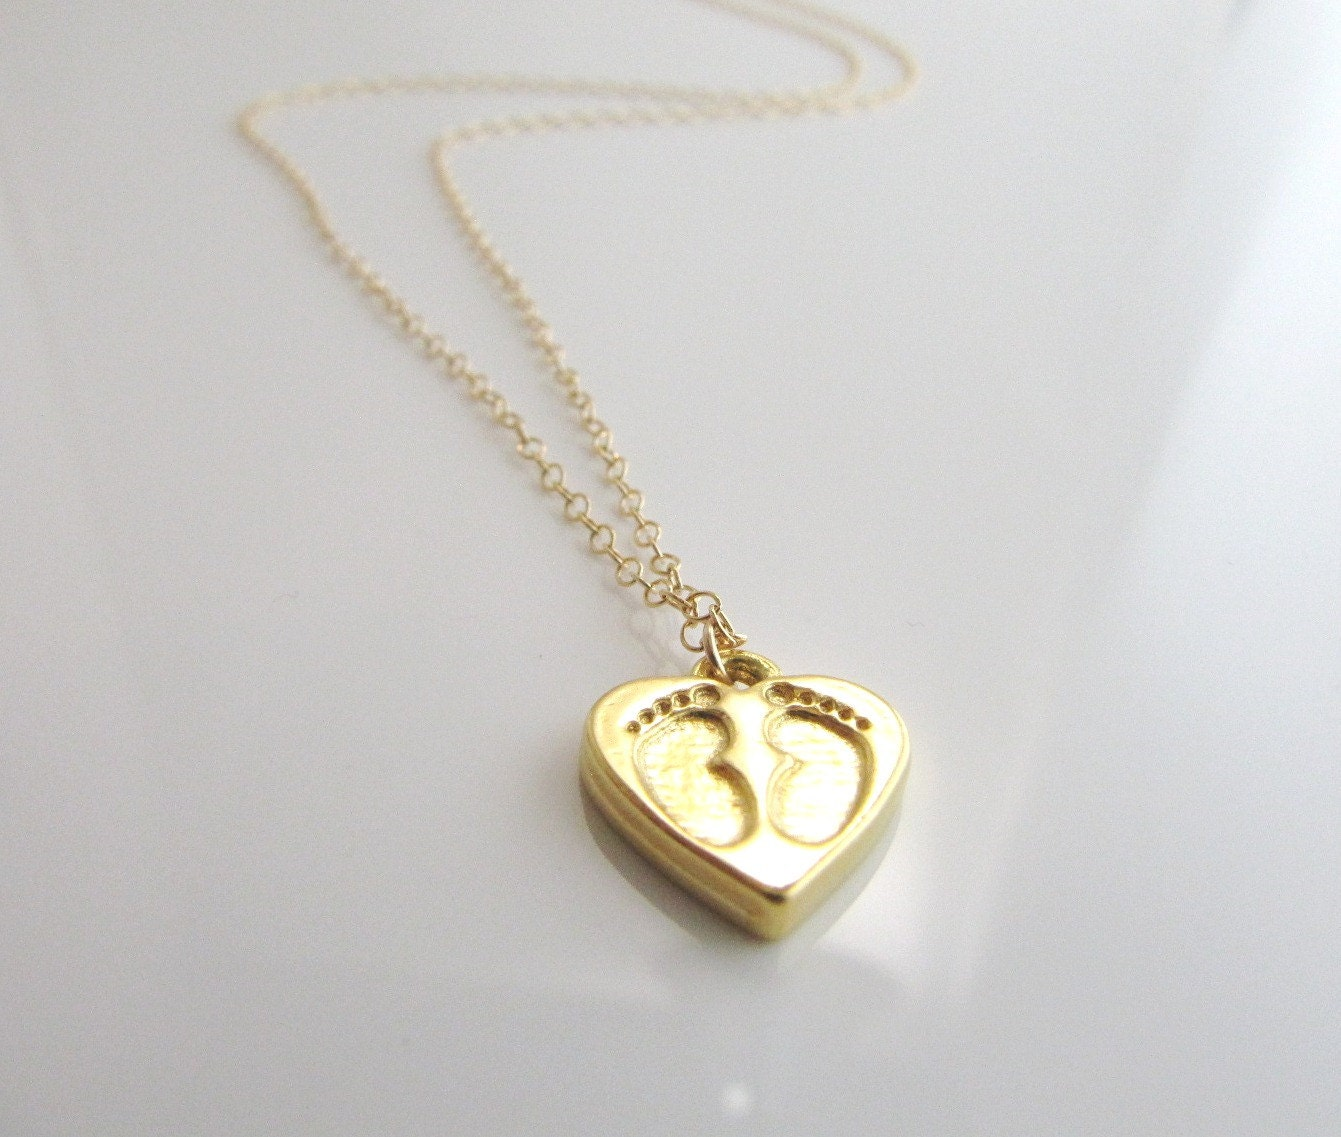 gold baby necklace with baby pendant 02 10921 by